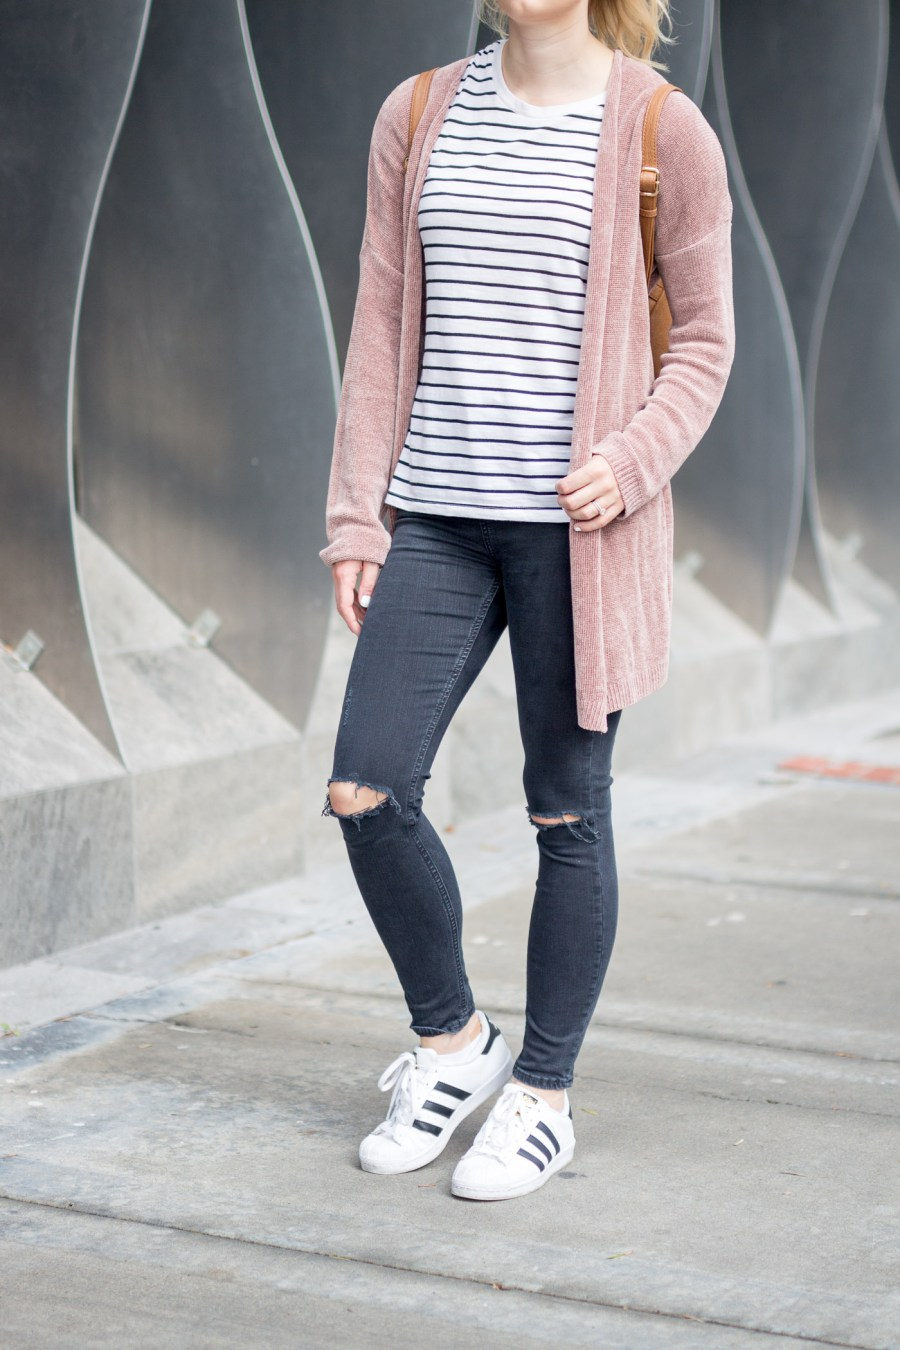 Comfy and Casual Outfit for Exploring San Diego, fashion blog, Treats and Trends